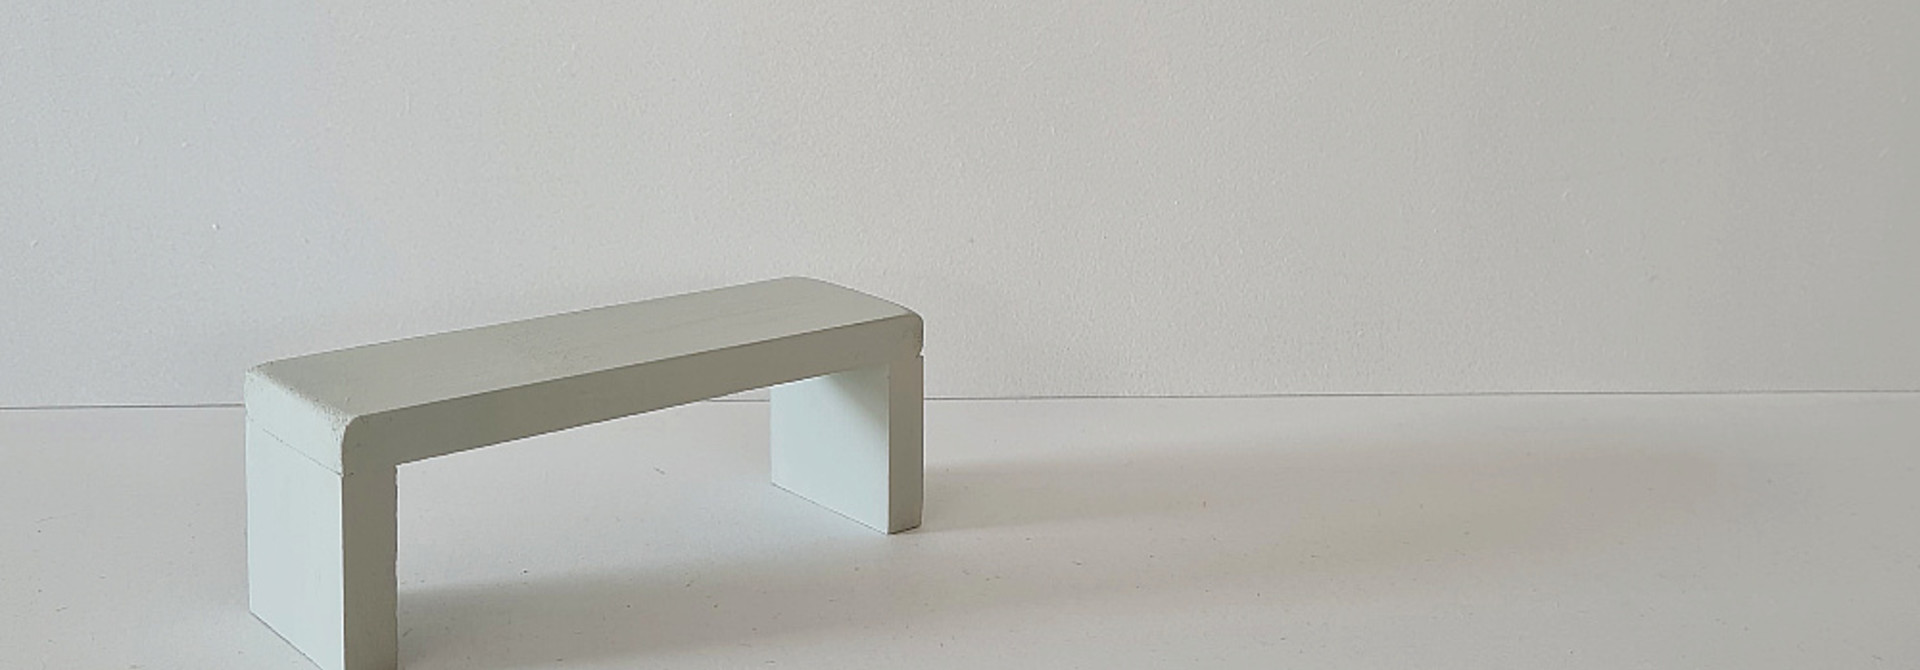 Side Table for Maileg Bed - Gentle Green